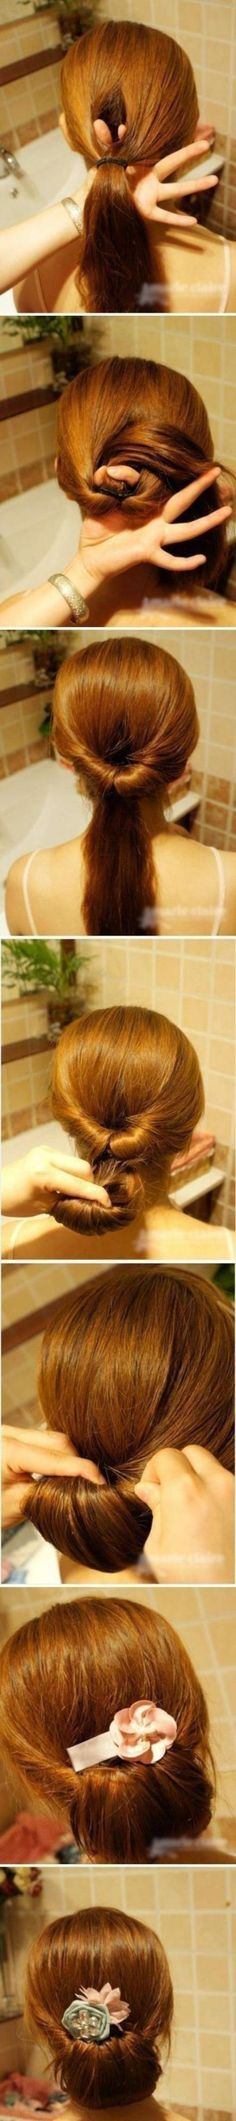 Simple low bun with flower accessory